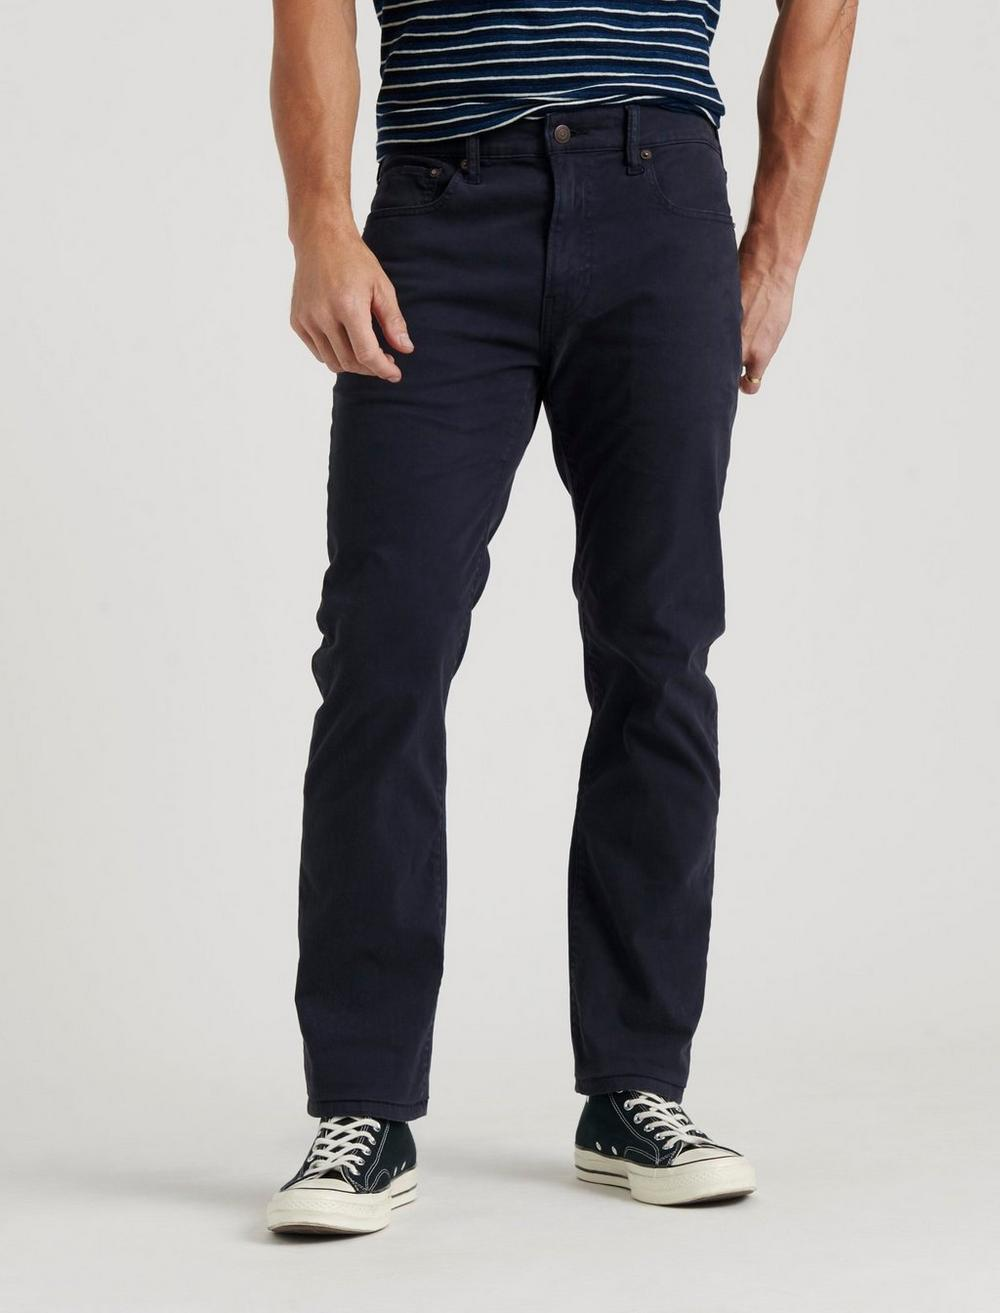 223 STRAIGHT SATEEN STRETCH JEAN, image 2